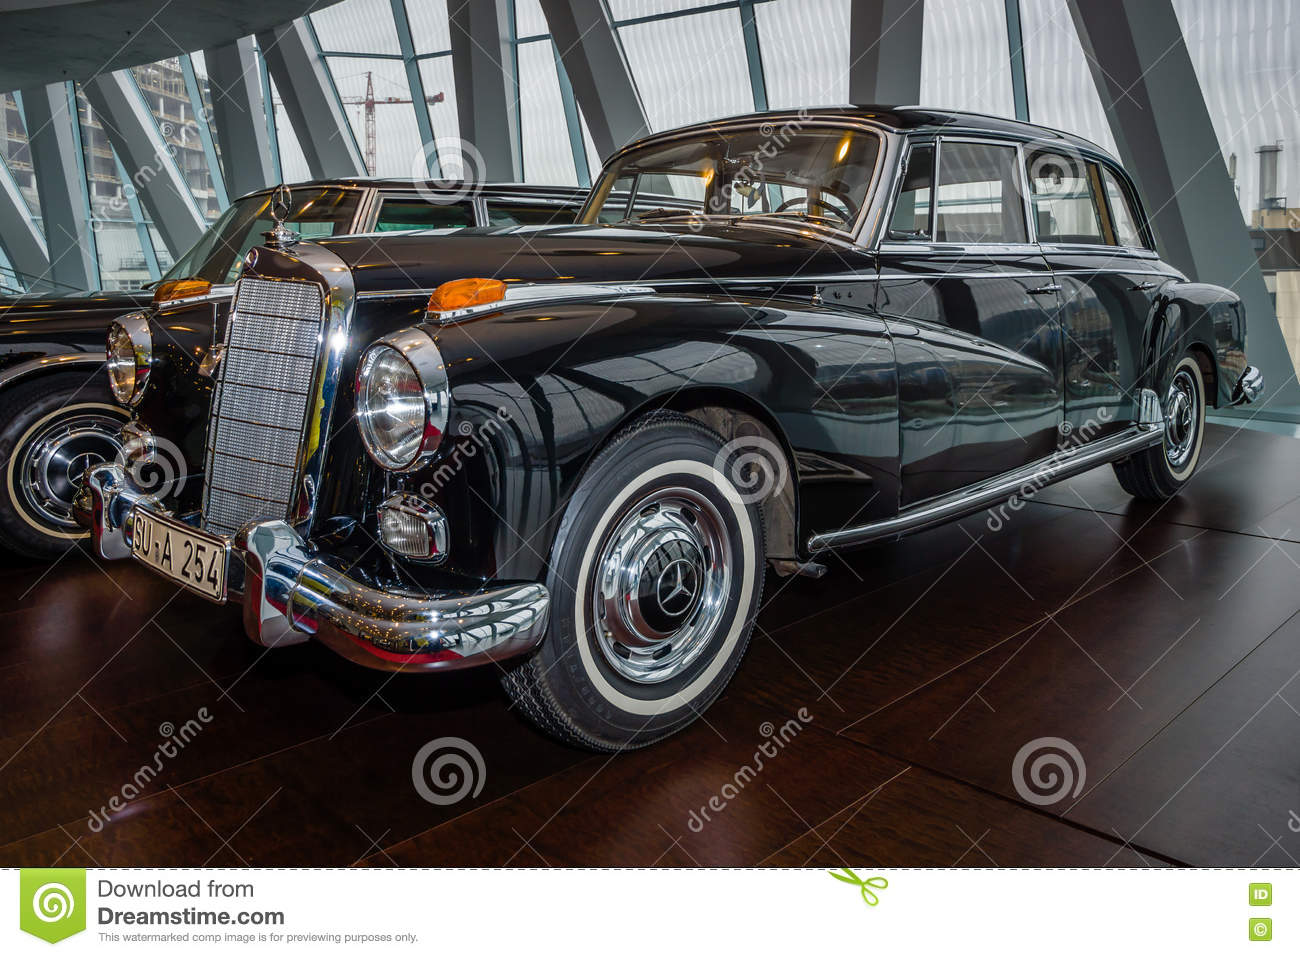 Car of chancellor konrad adenauer mercedes benz type 300d for Mercedes benz gas type